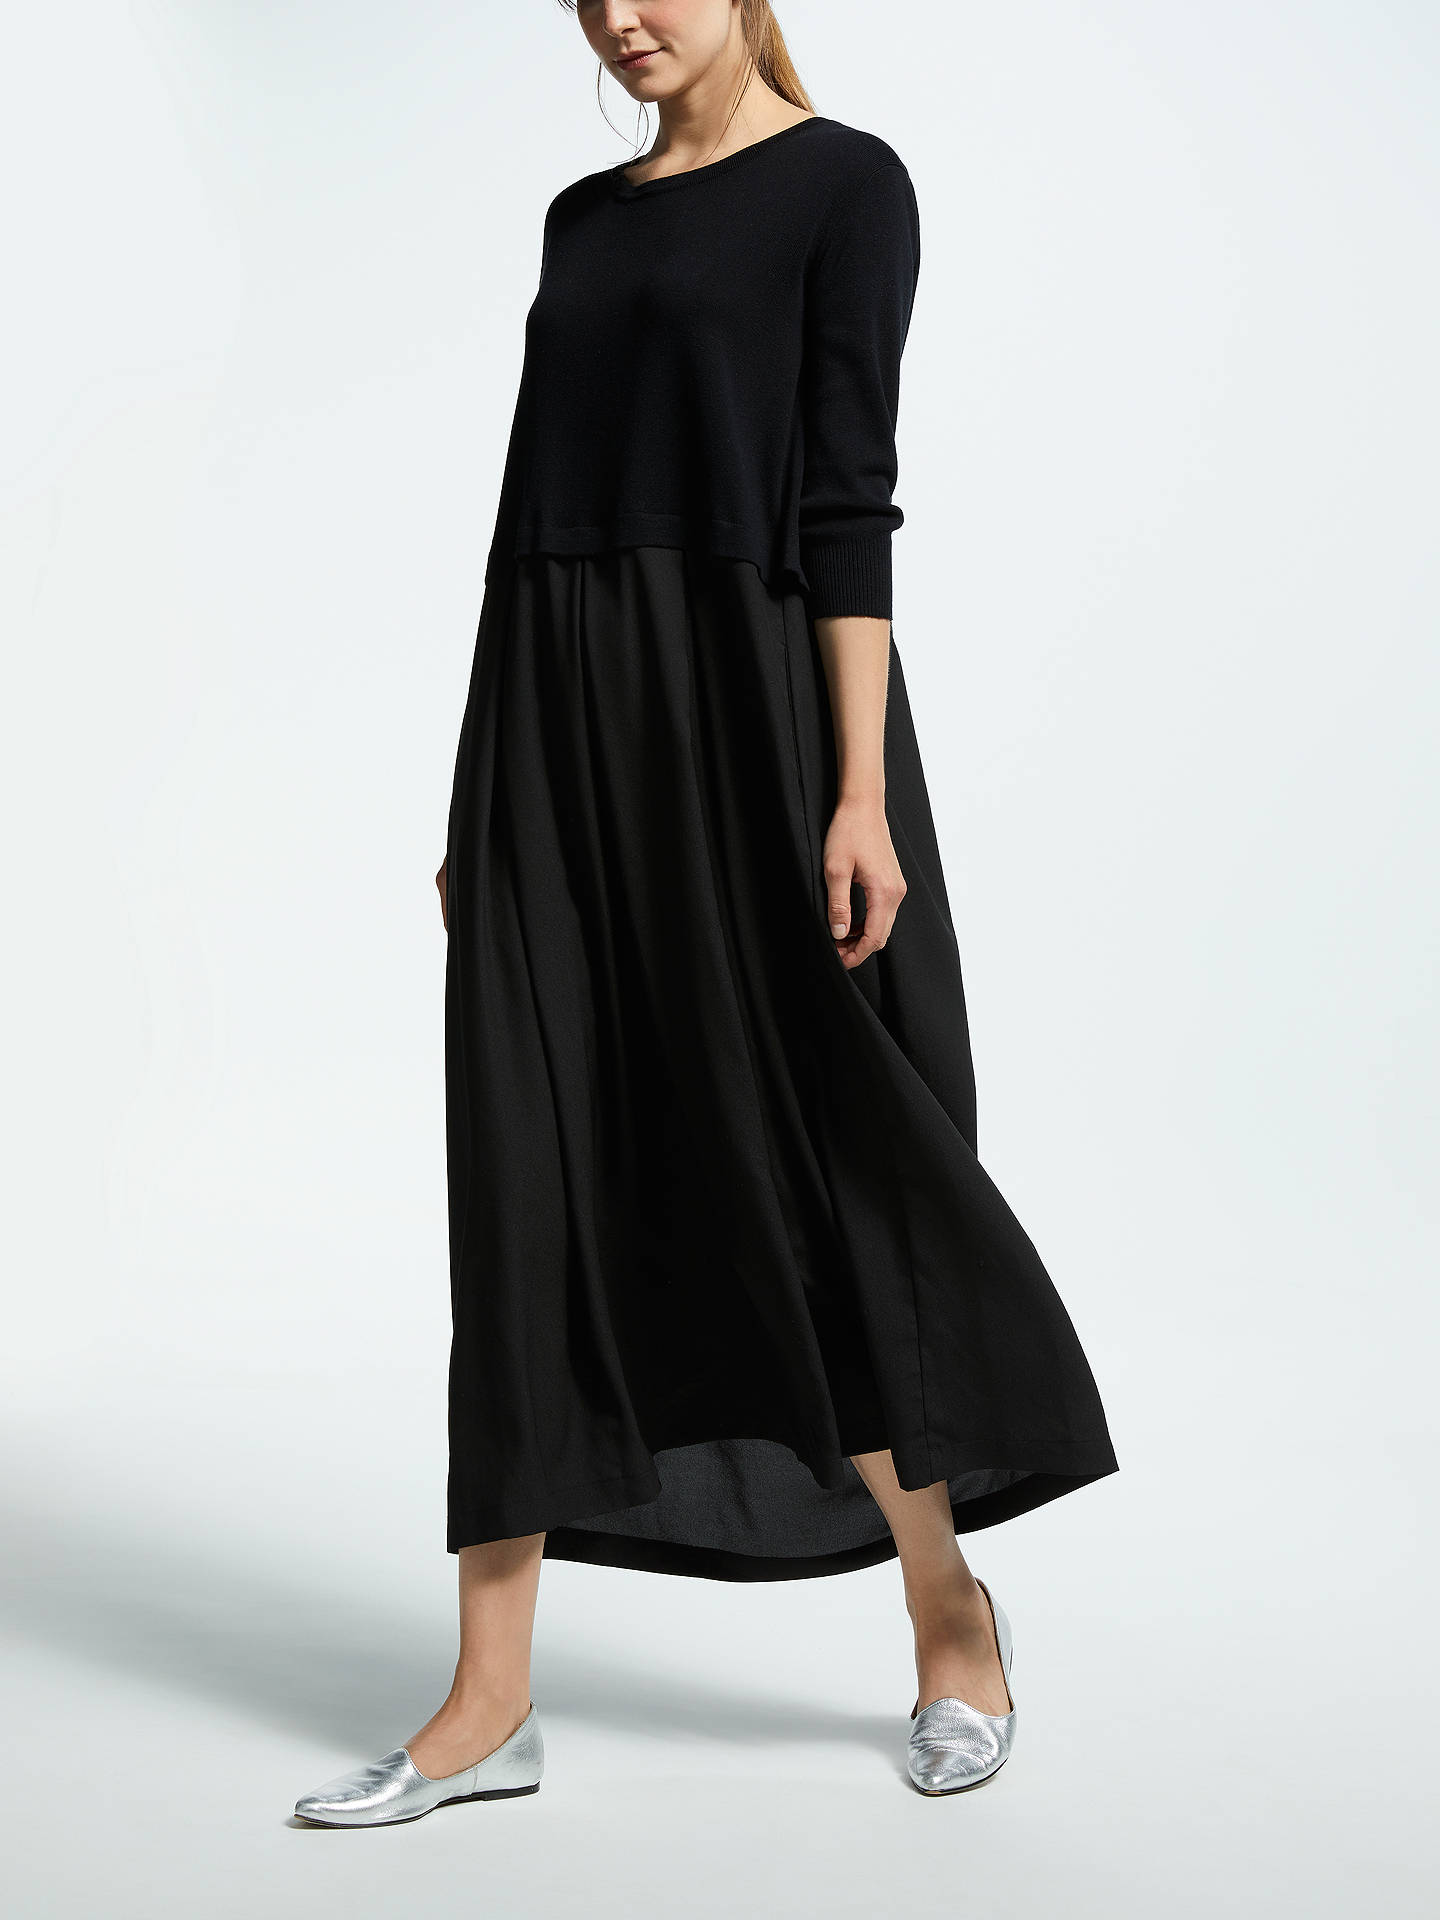 28720e7c070 Buy Weekend MaxMara Knit Overlay Maxi Dress, Black, M Online at  johnlewis.com ...